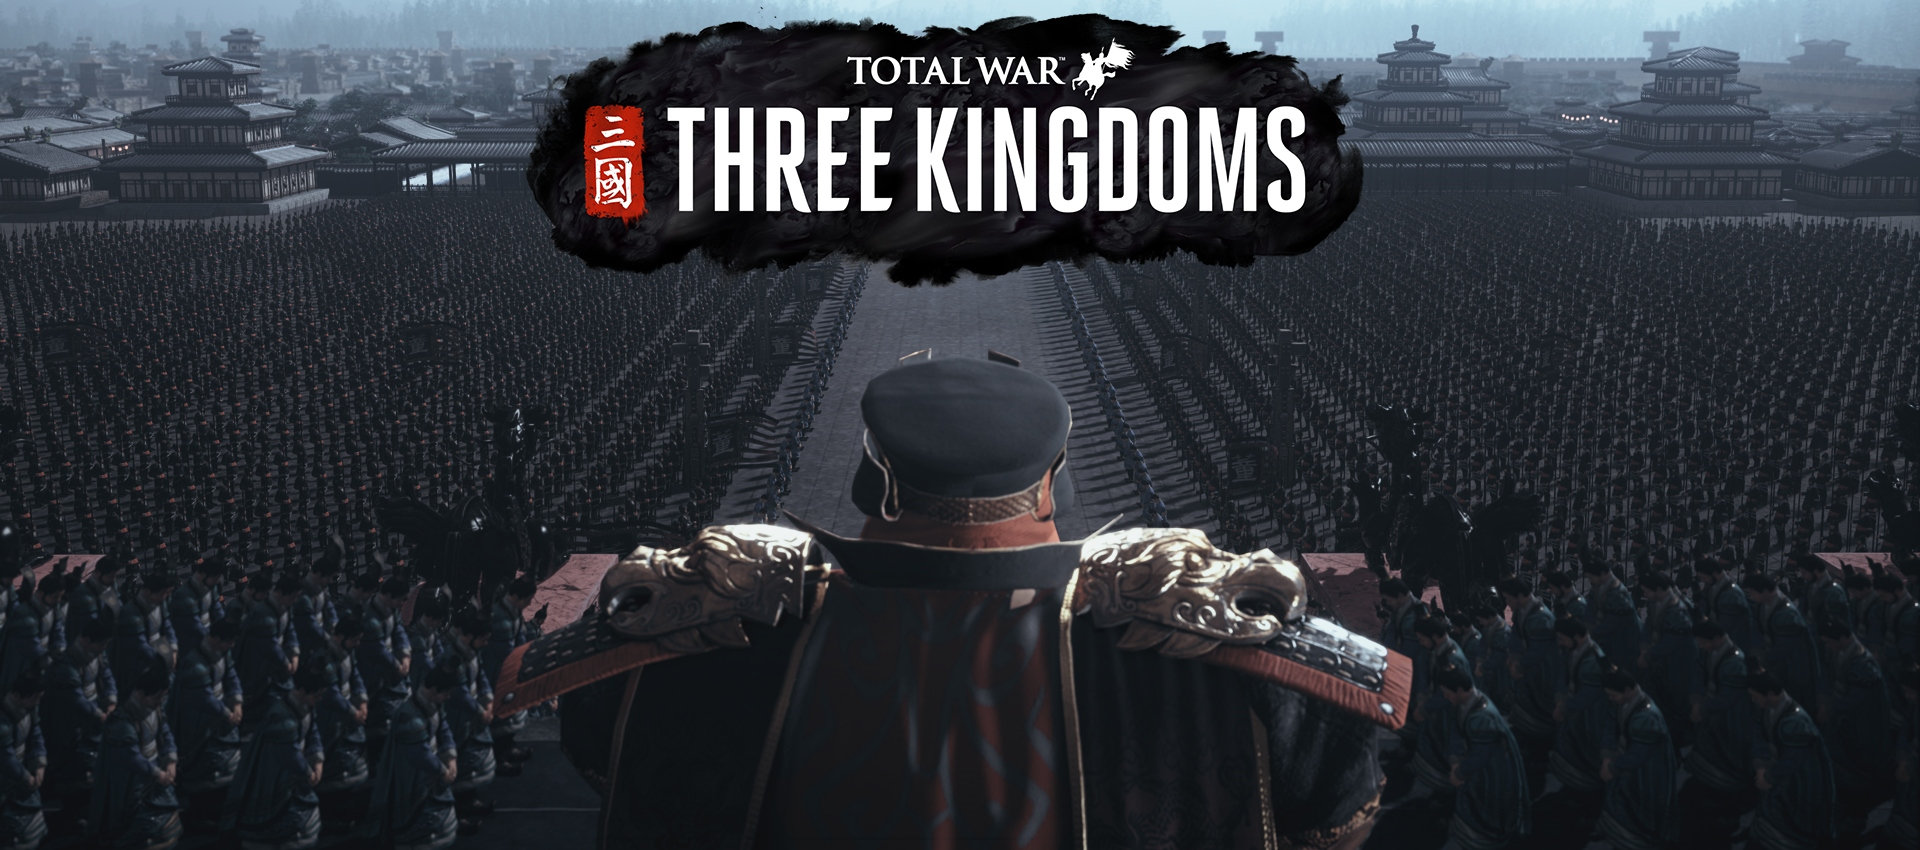 Total War: Three Kingdoms Tyrannical Gameplay Video With Dong Zhuo